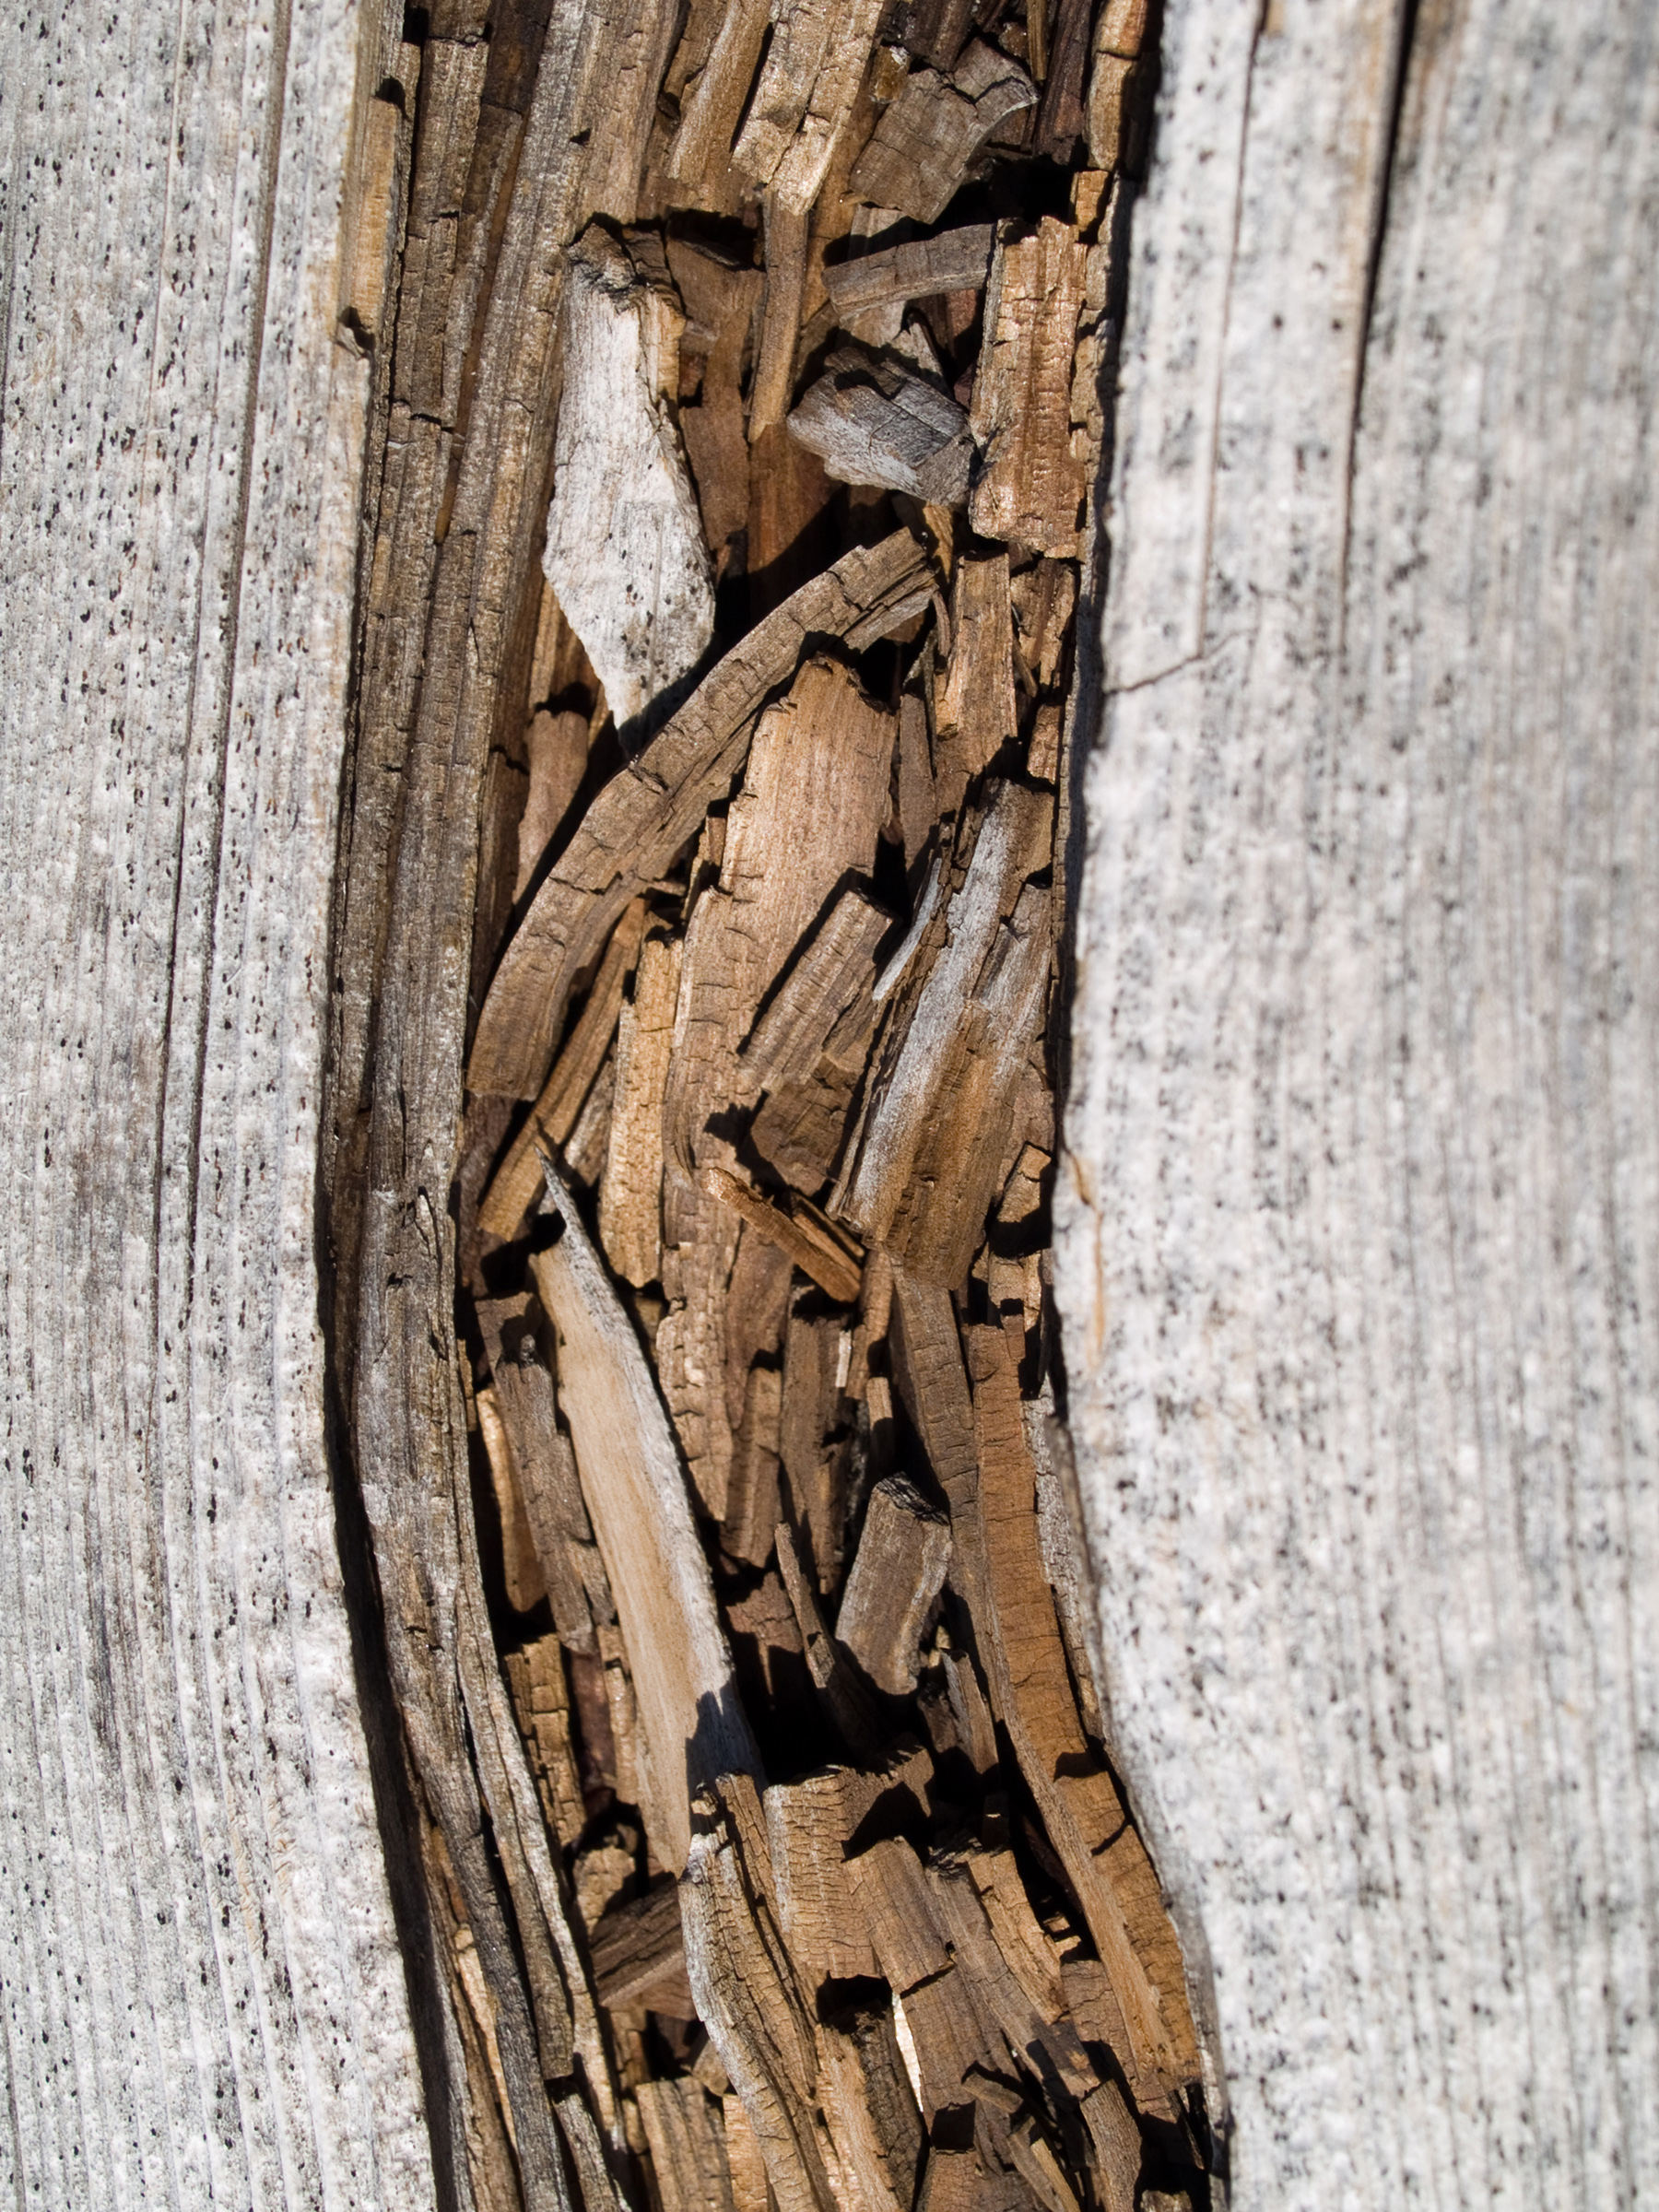 Wood, Aging, Time, Plank, Rot, HQ Photo